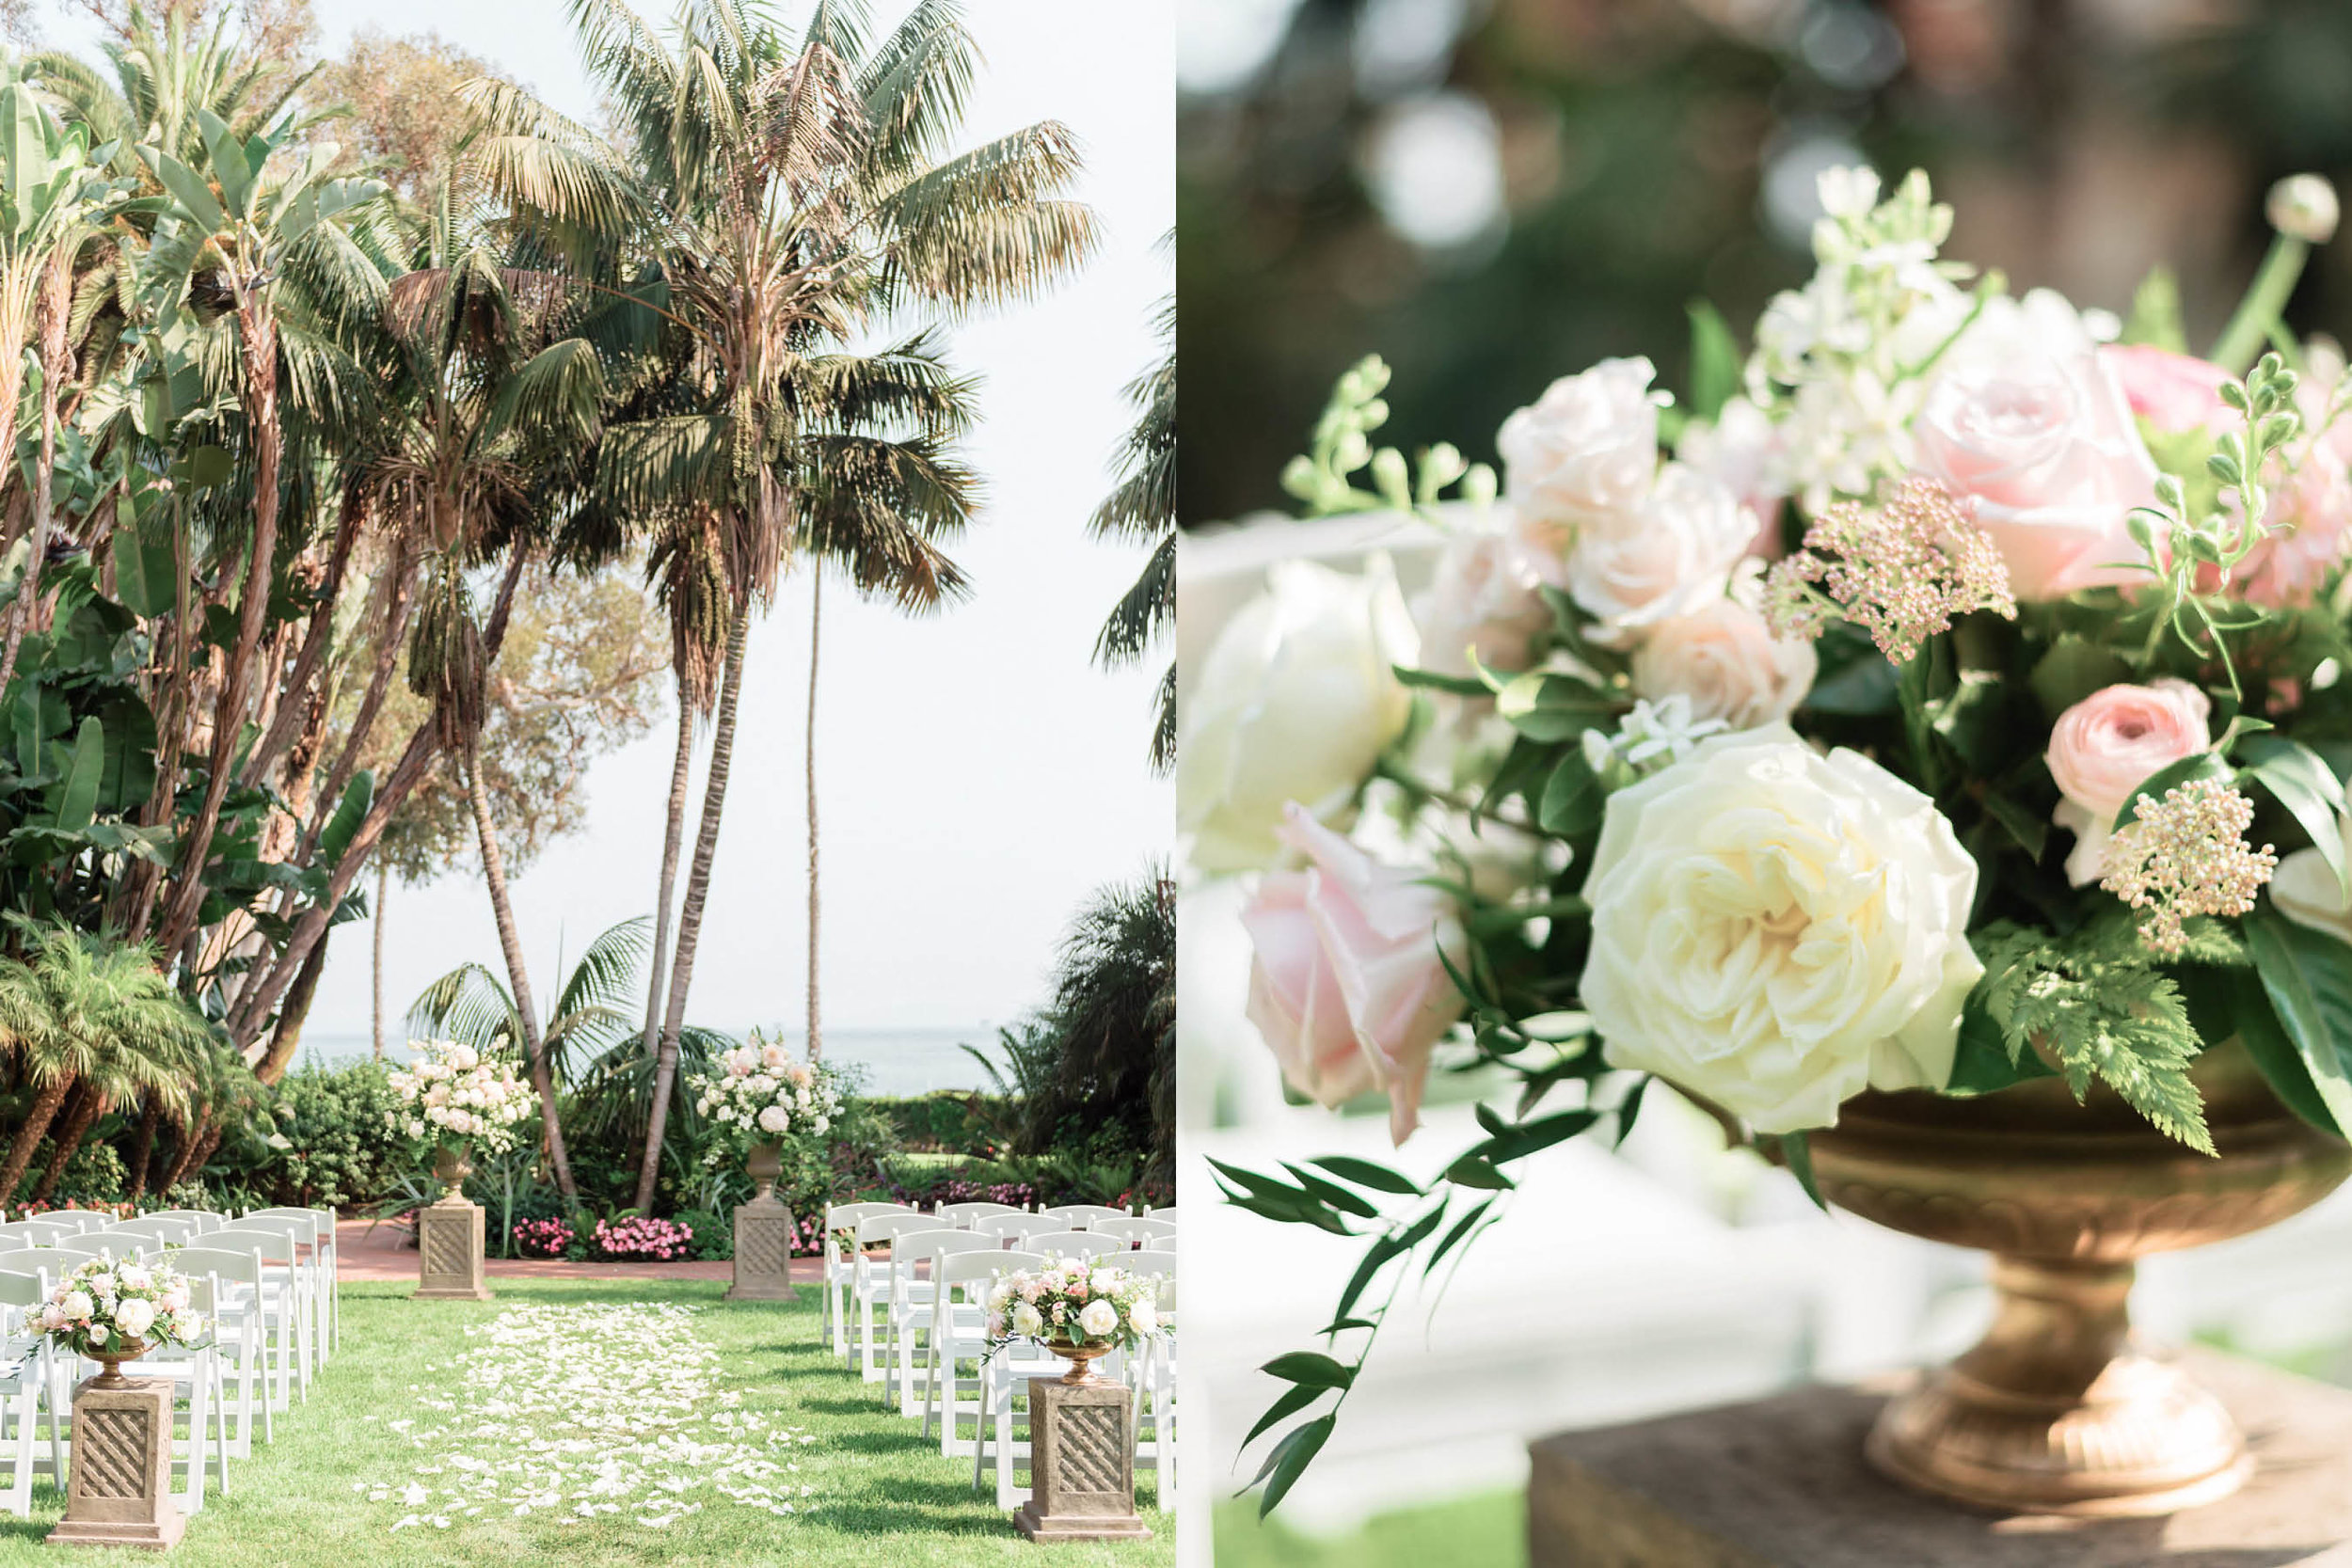 santa-barbara-elopement-elope-wedding-planner-coordinator-day-of-four-seasons-biltmore-ocean-front-view-garden-pink-white-green-montecito-black-tie (11).jpg